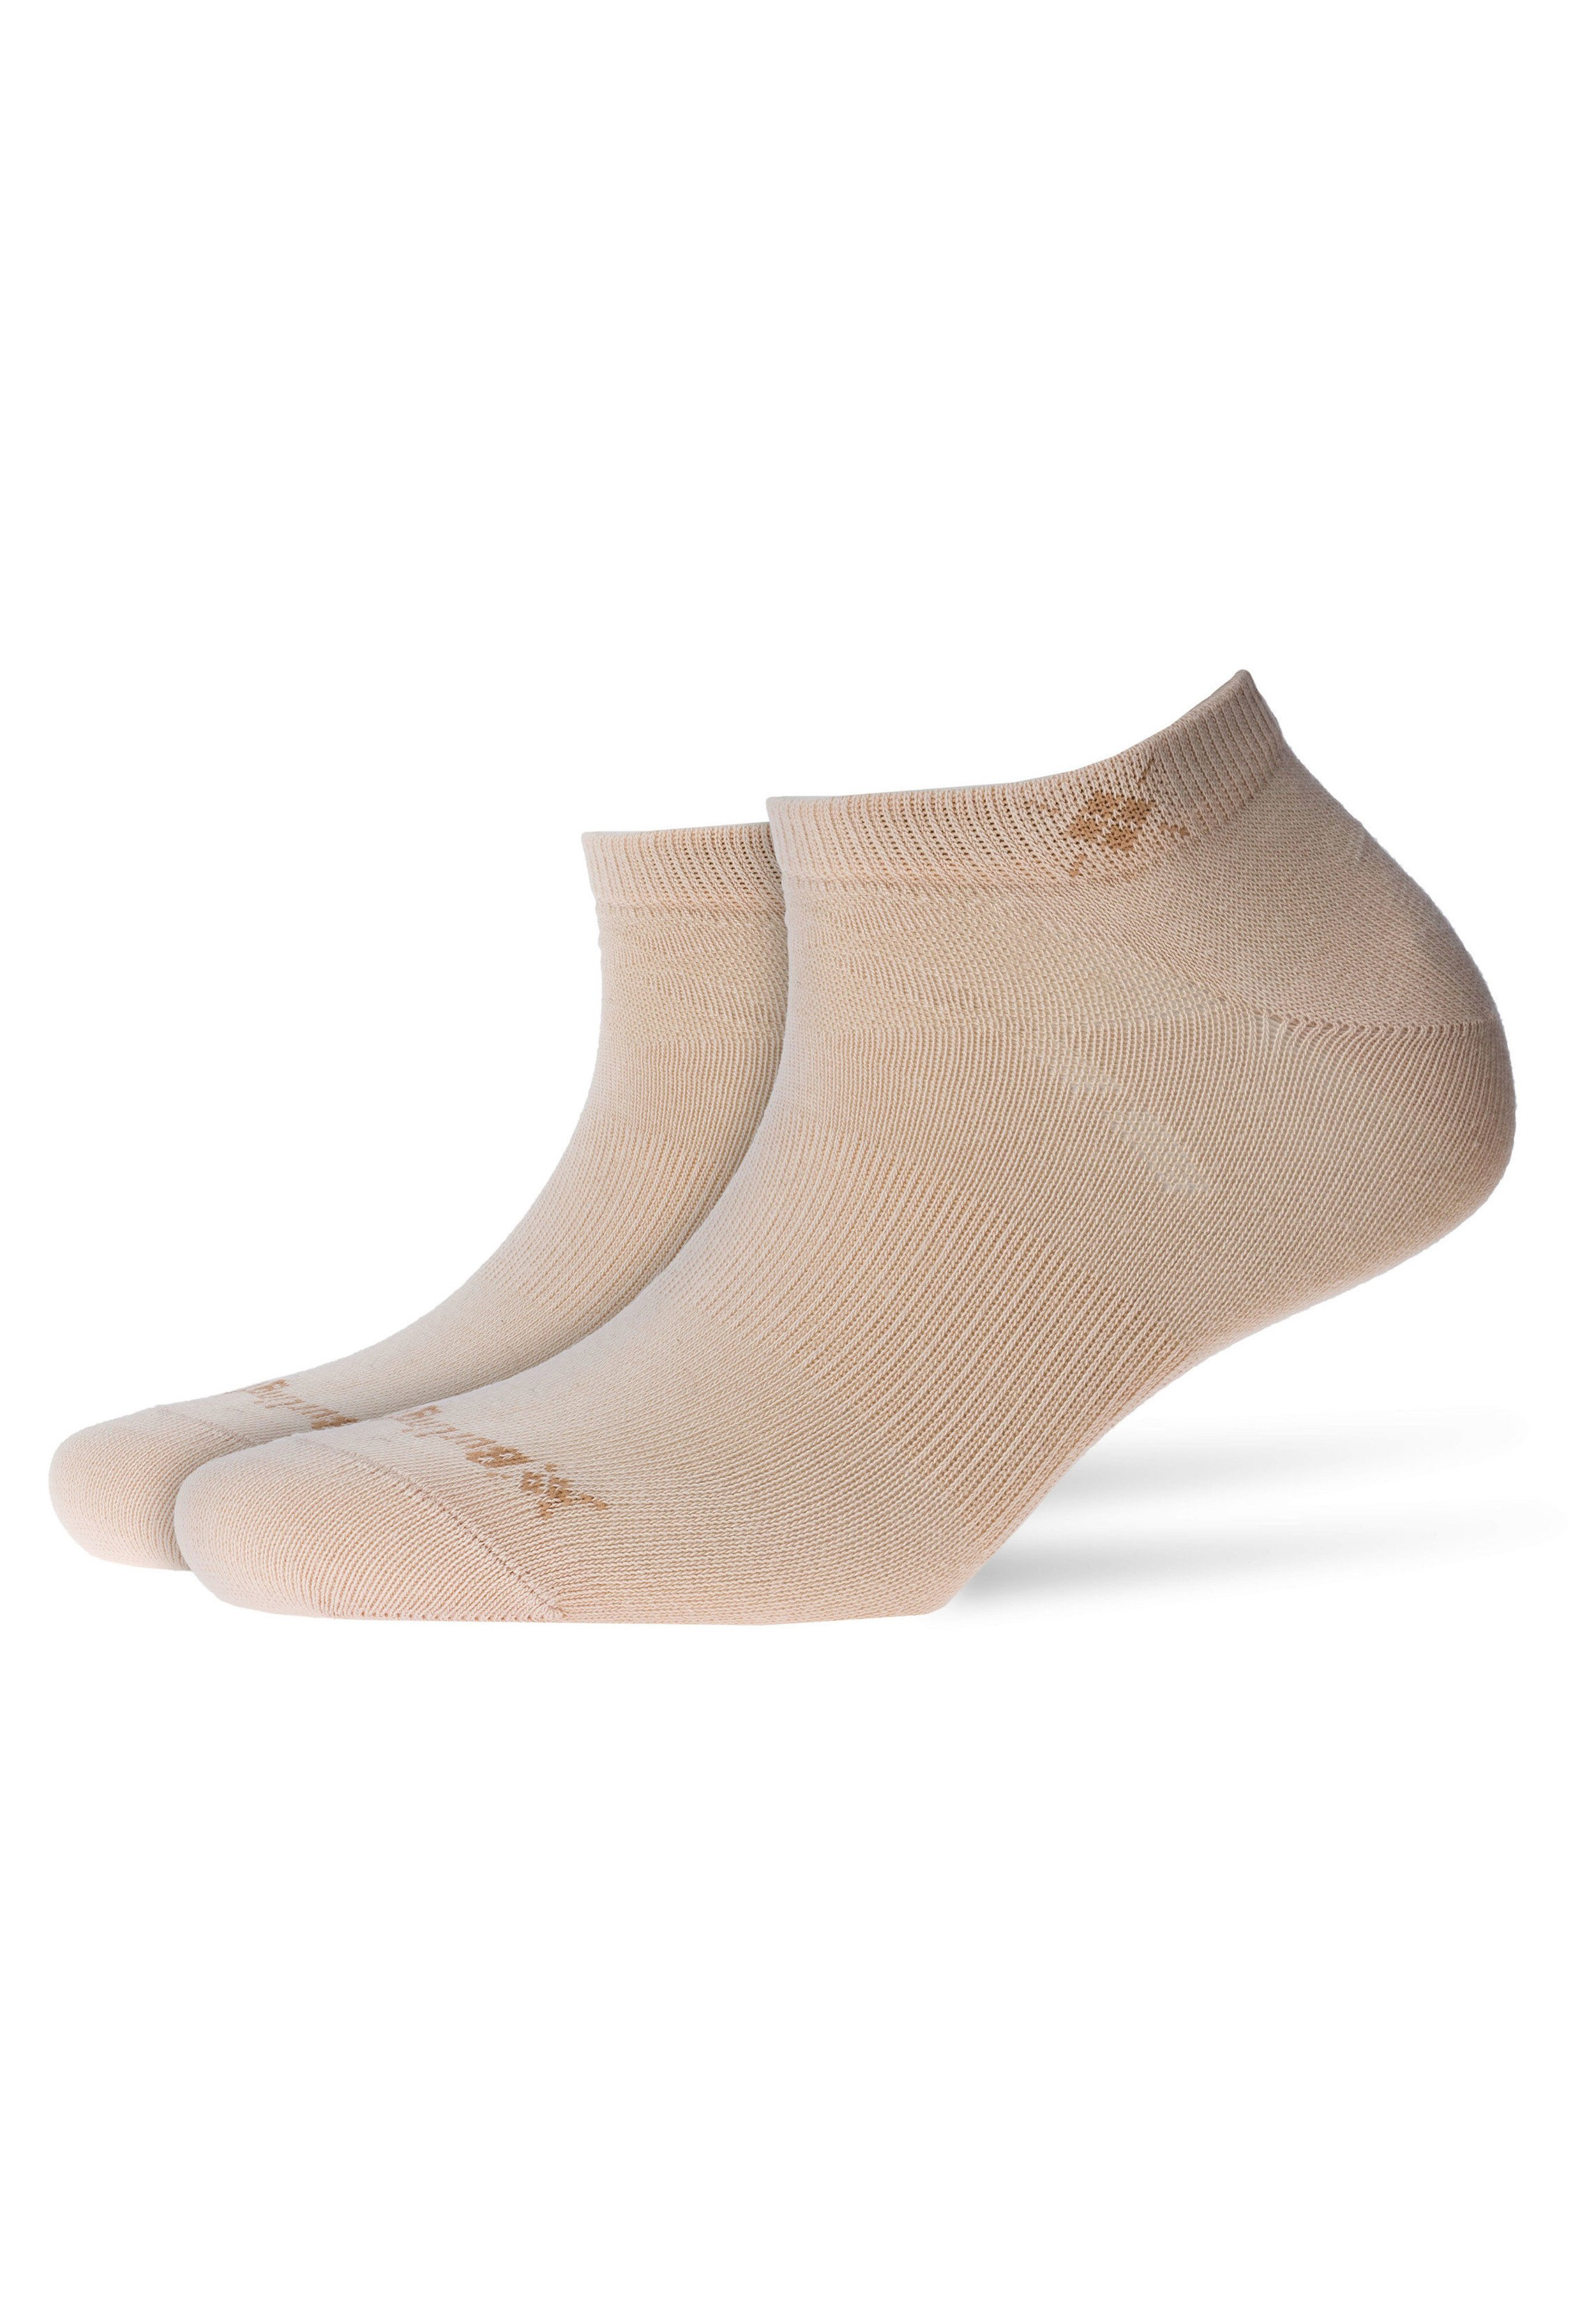 Femme 2-PACK - Chaussettes